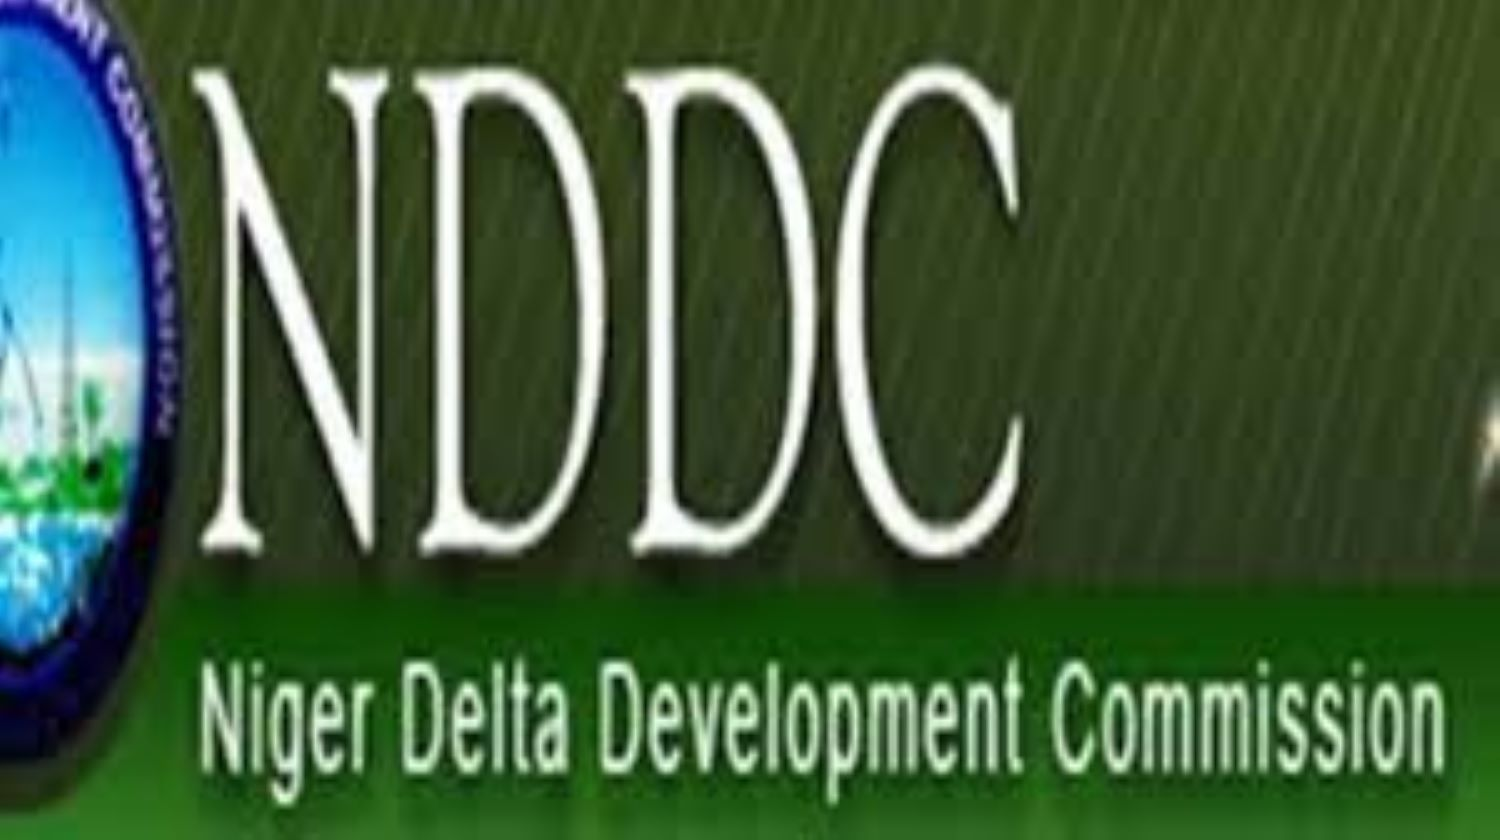 South-south Governor Seek Substantive Board For NDDC